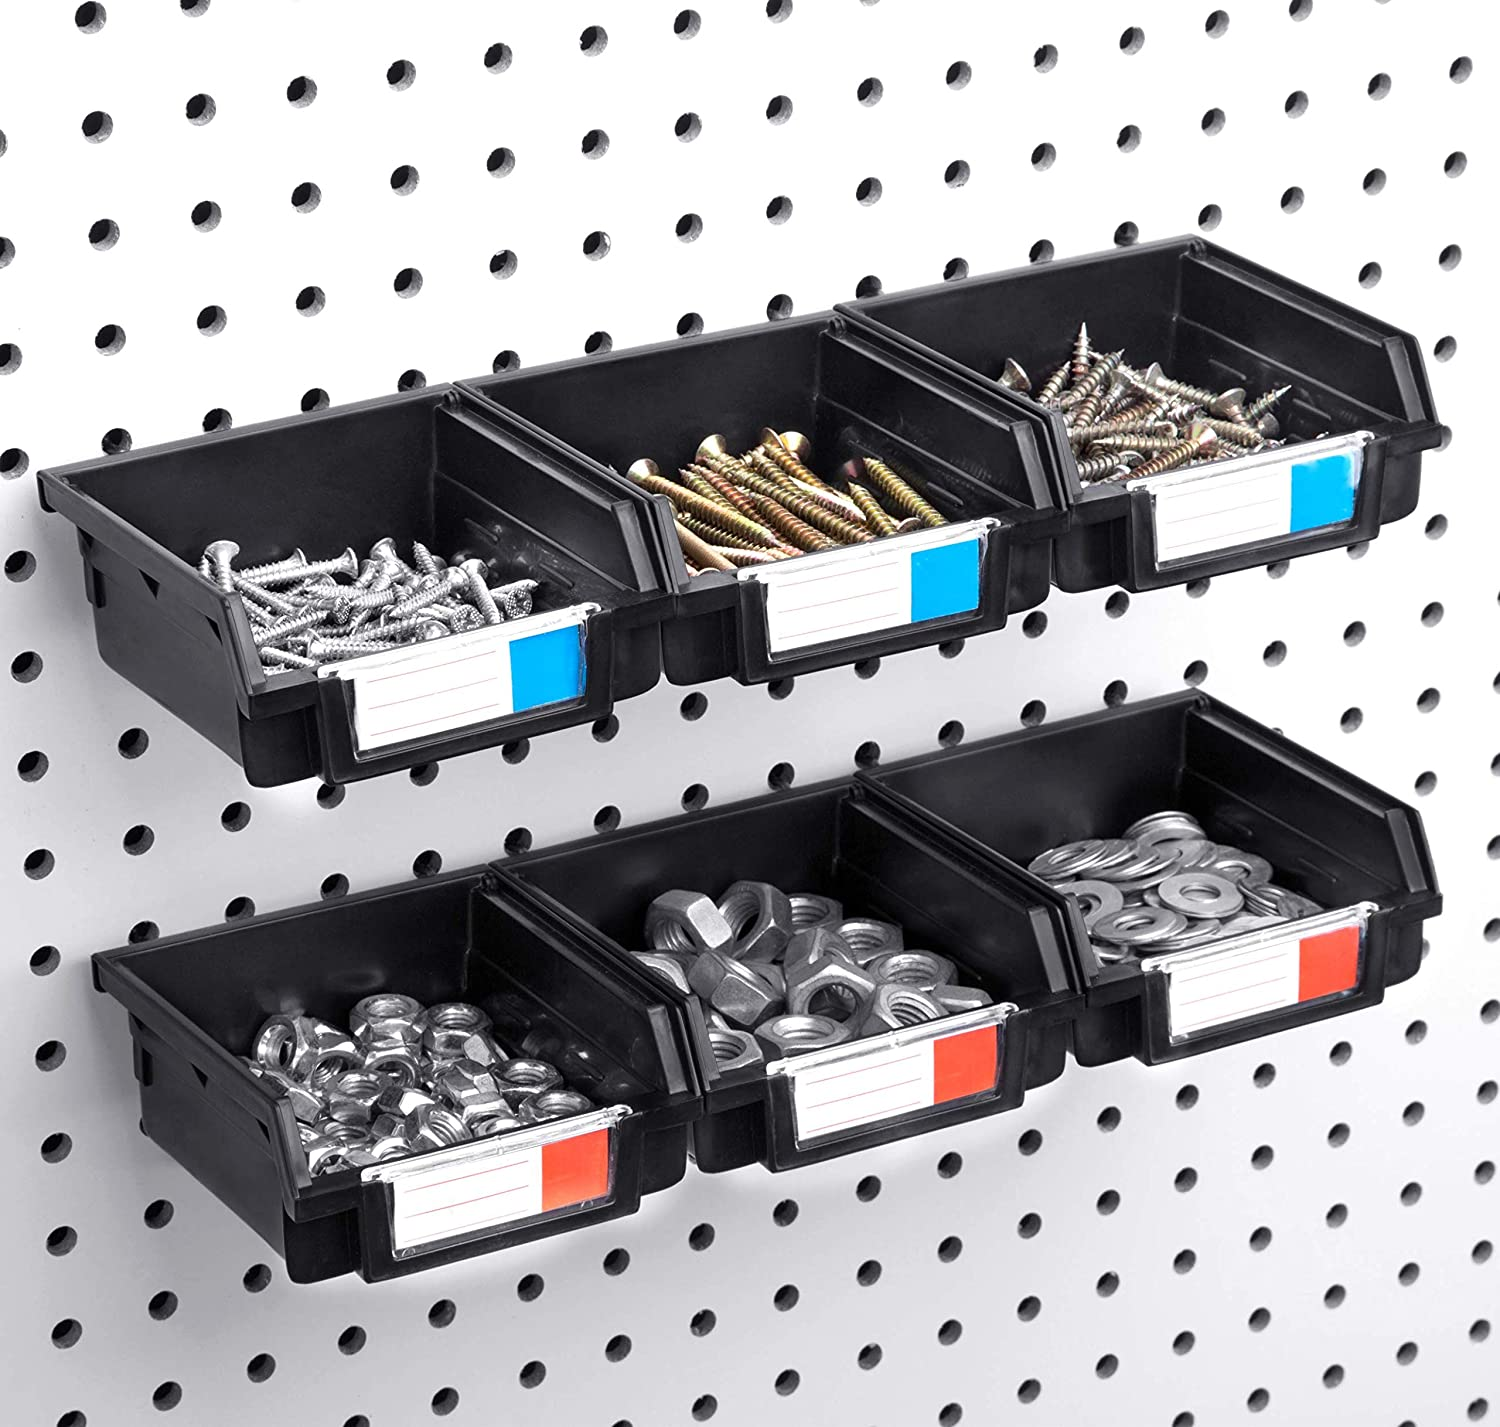 Craft and Parts Hardware Peg Board Accessory Organizer Storage Attachment Black Magicfly 12 Pack Pegboard Bins 3 Sizes Pegboard Storage Hooks Fits Any Tools Extra 6 Hooks